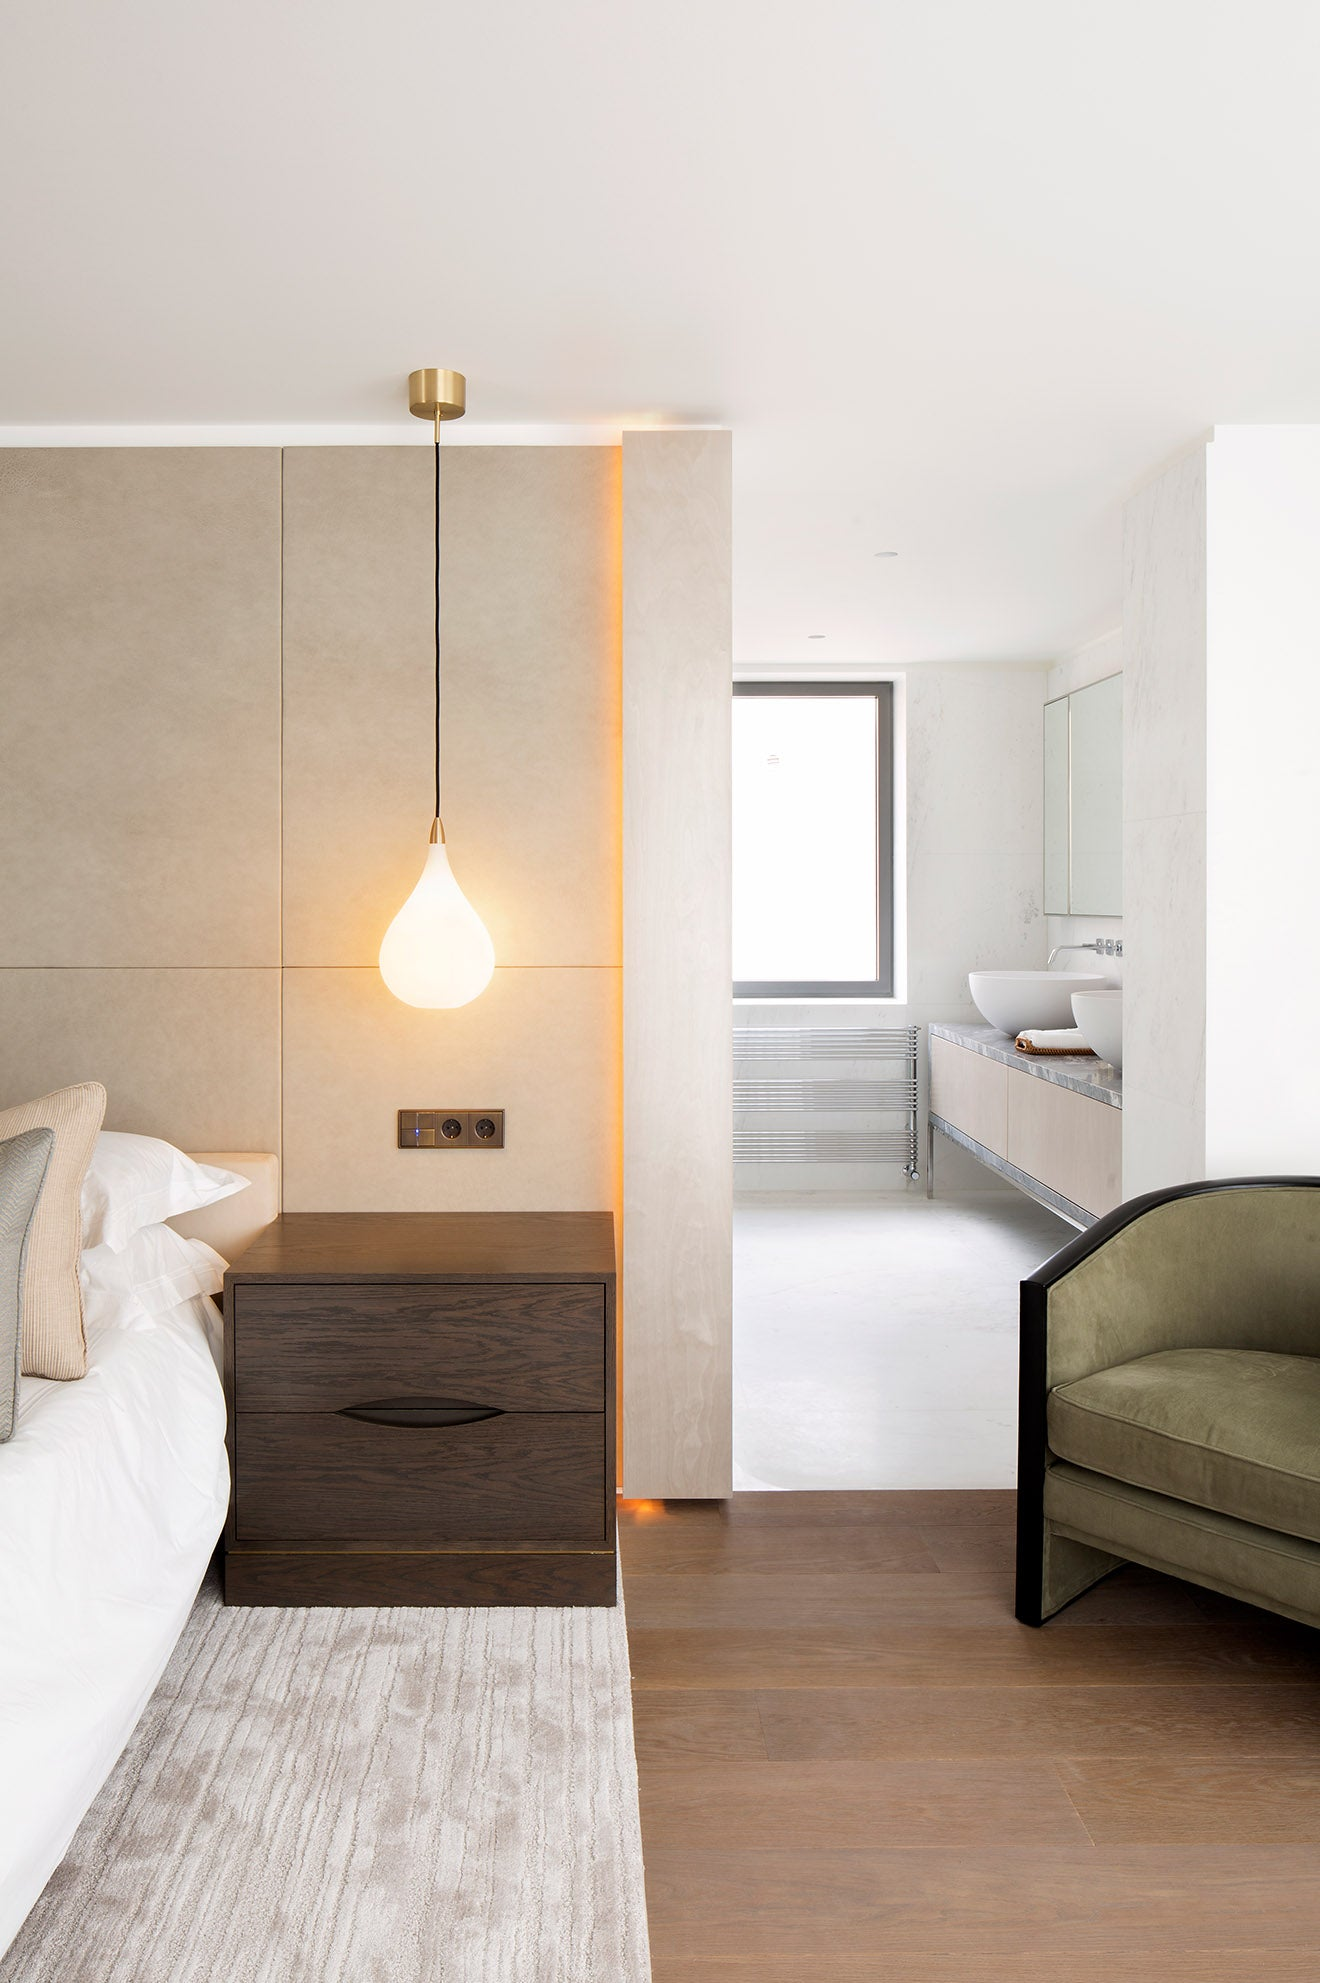 Luxuey bedroom detail in this modern house in Istanbul designed by 1508